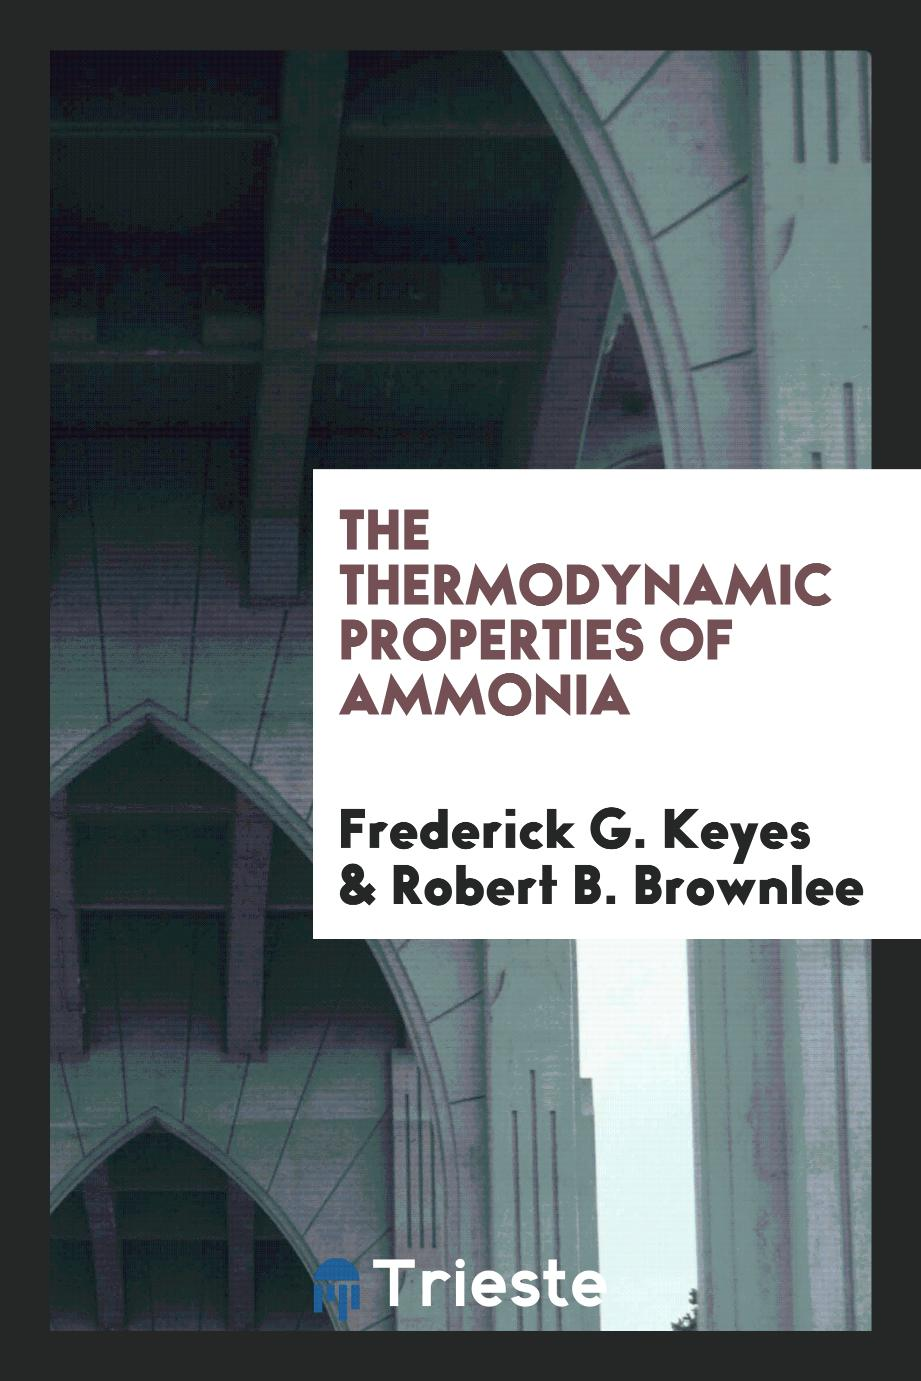 The thermodynamic properties of ammonia